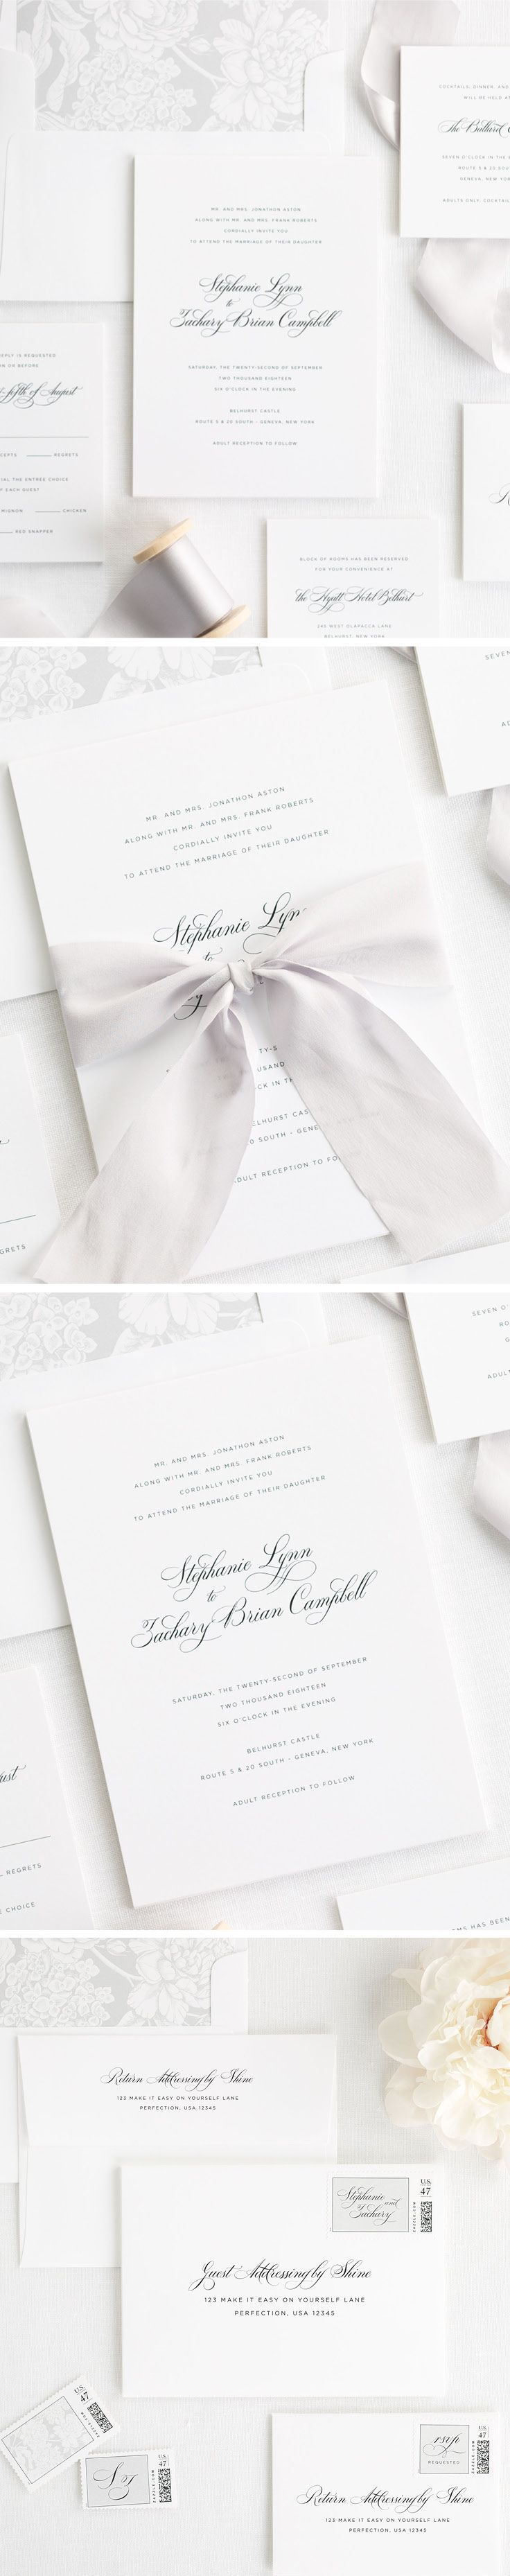 Delicate Elegance Ribbon Wedding Invitations | Weddings